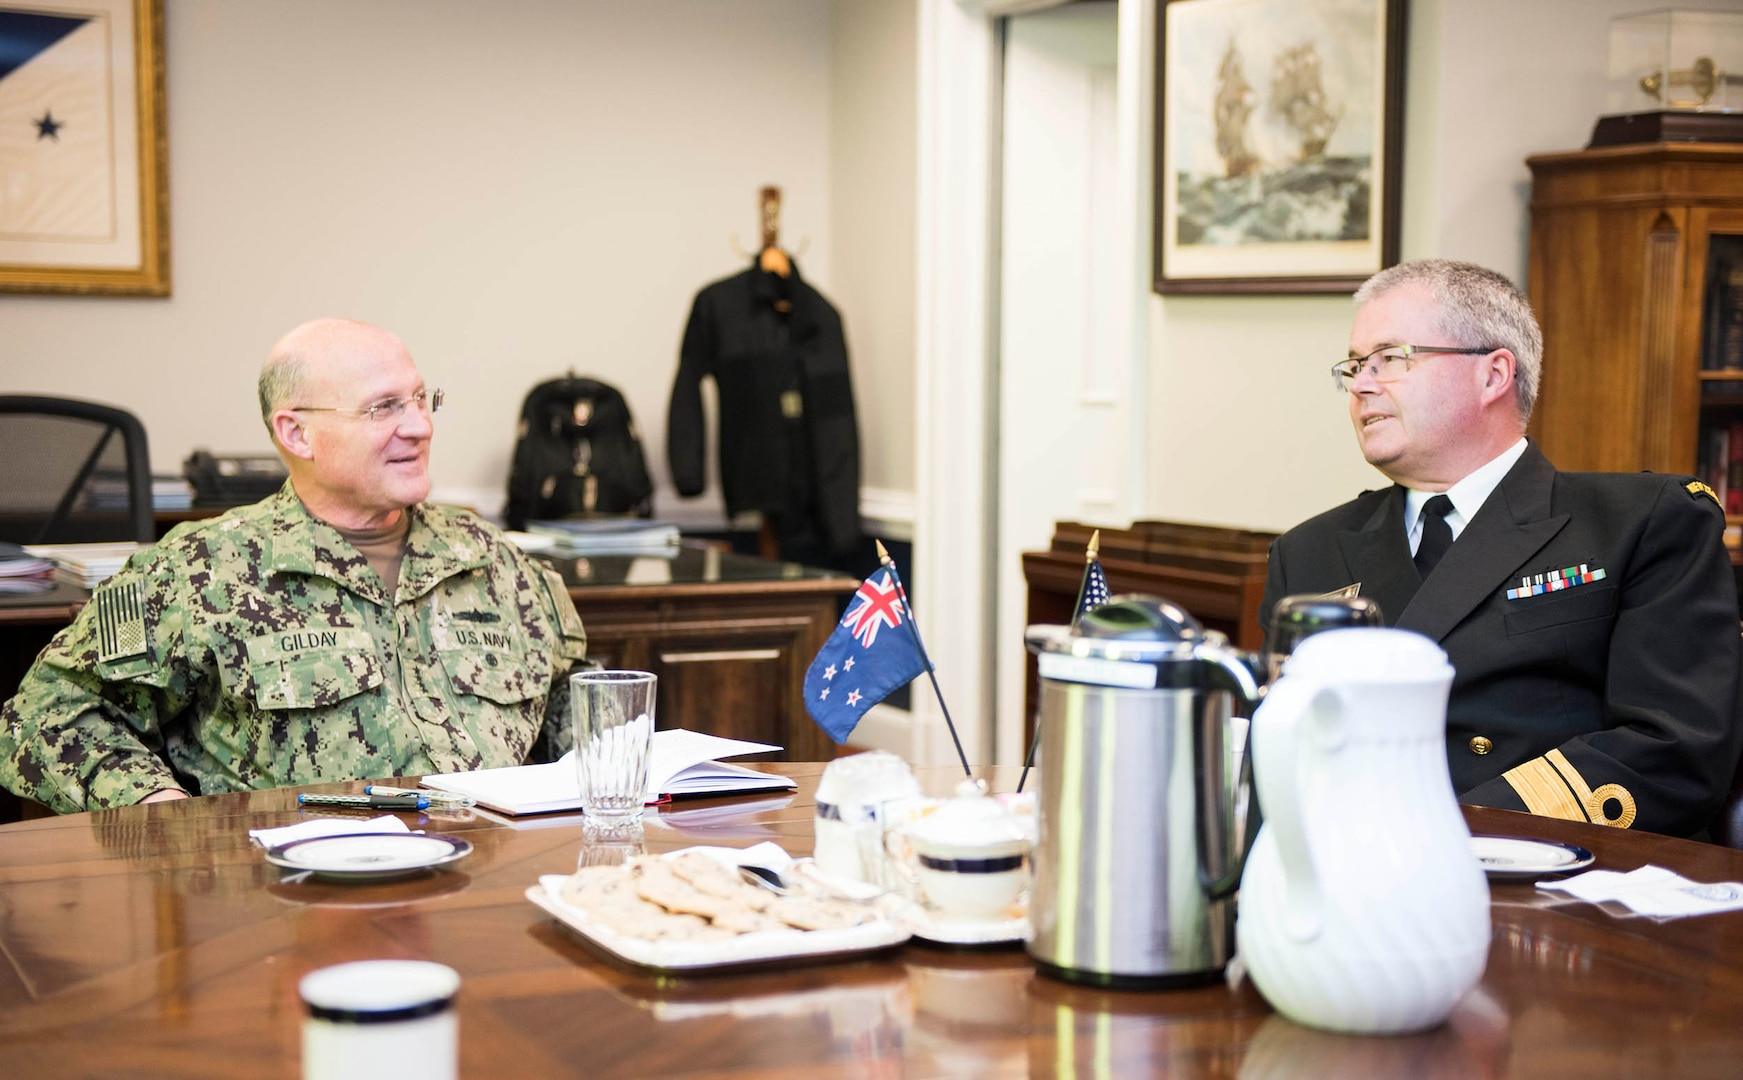 CNO Meets with Chief of Royal New Zealand Navy, Advances Partnership